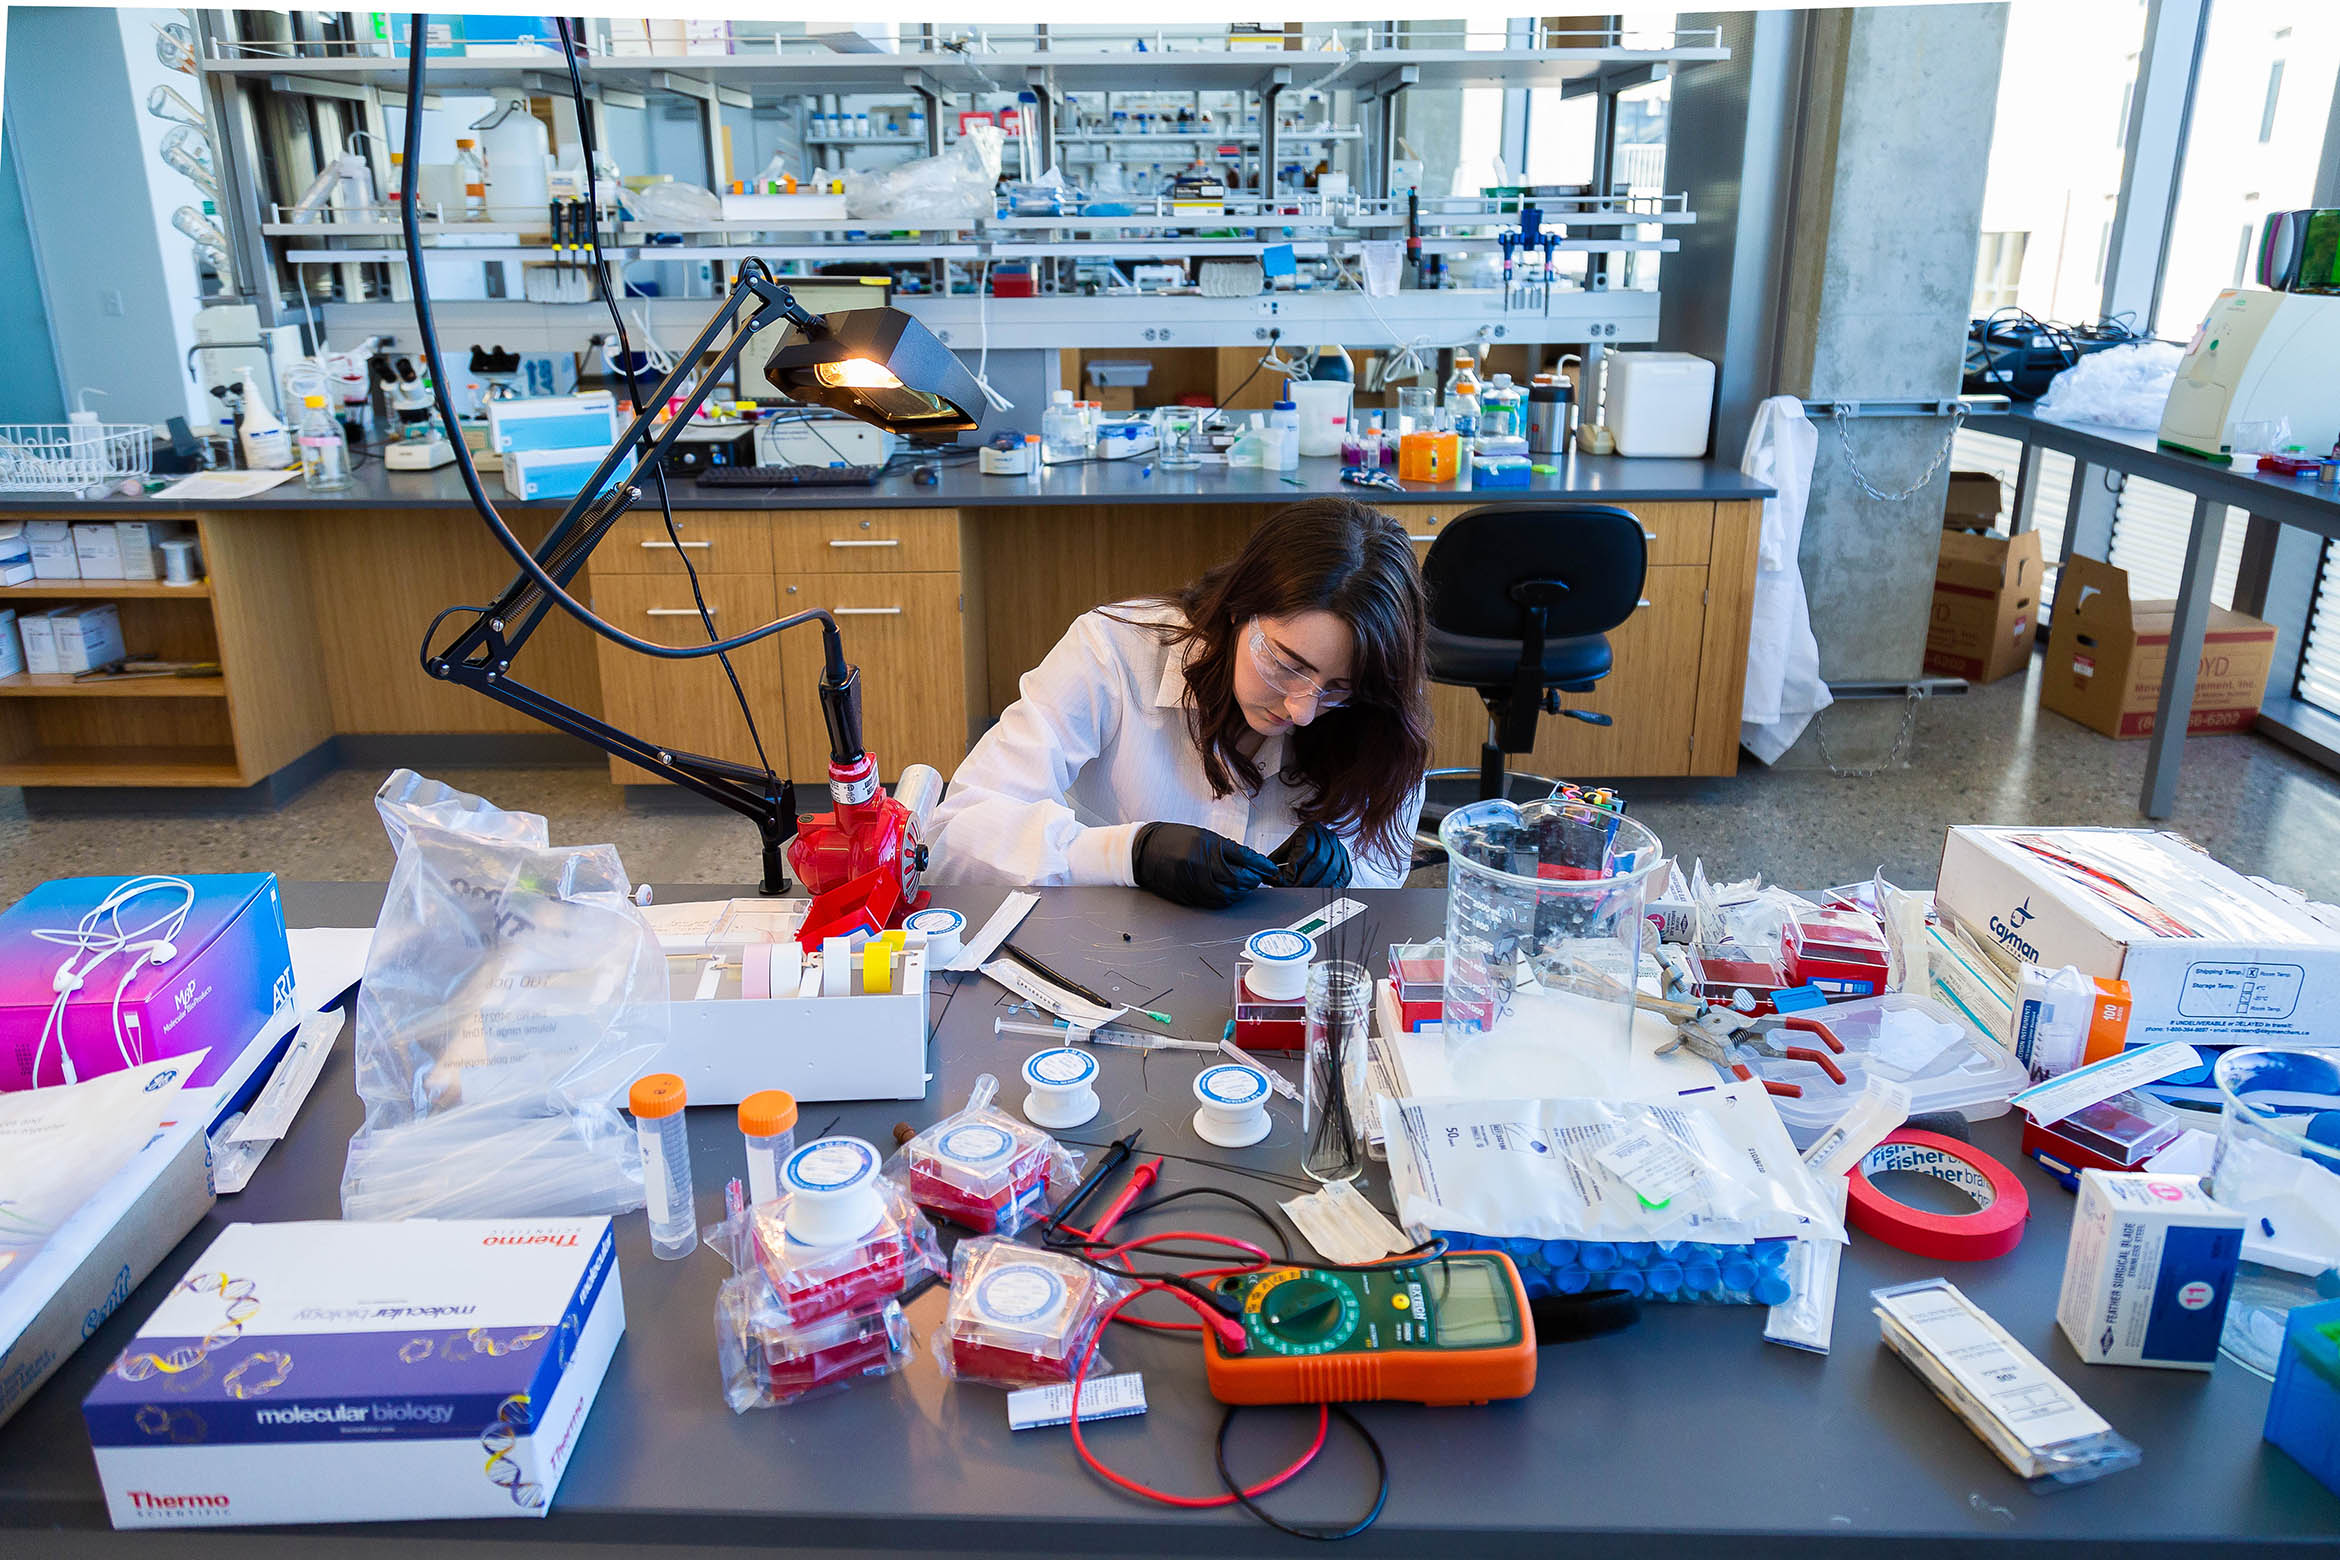 This is a student doing research in a lab.